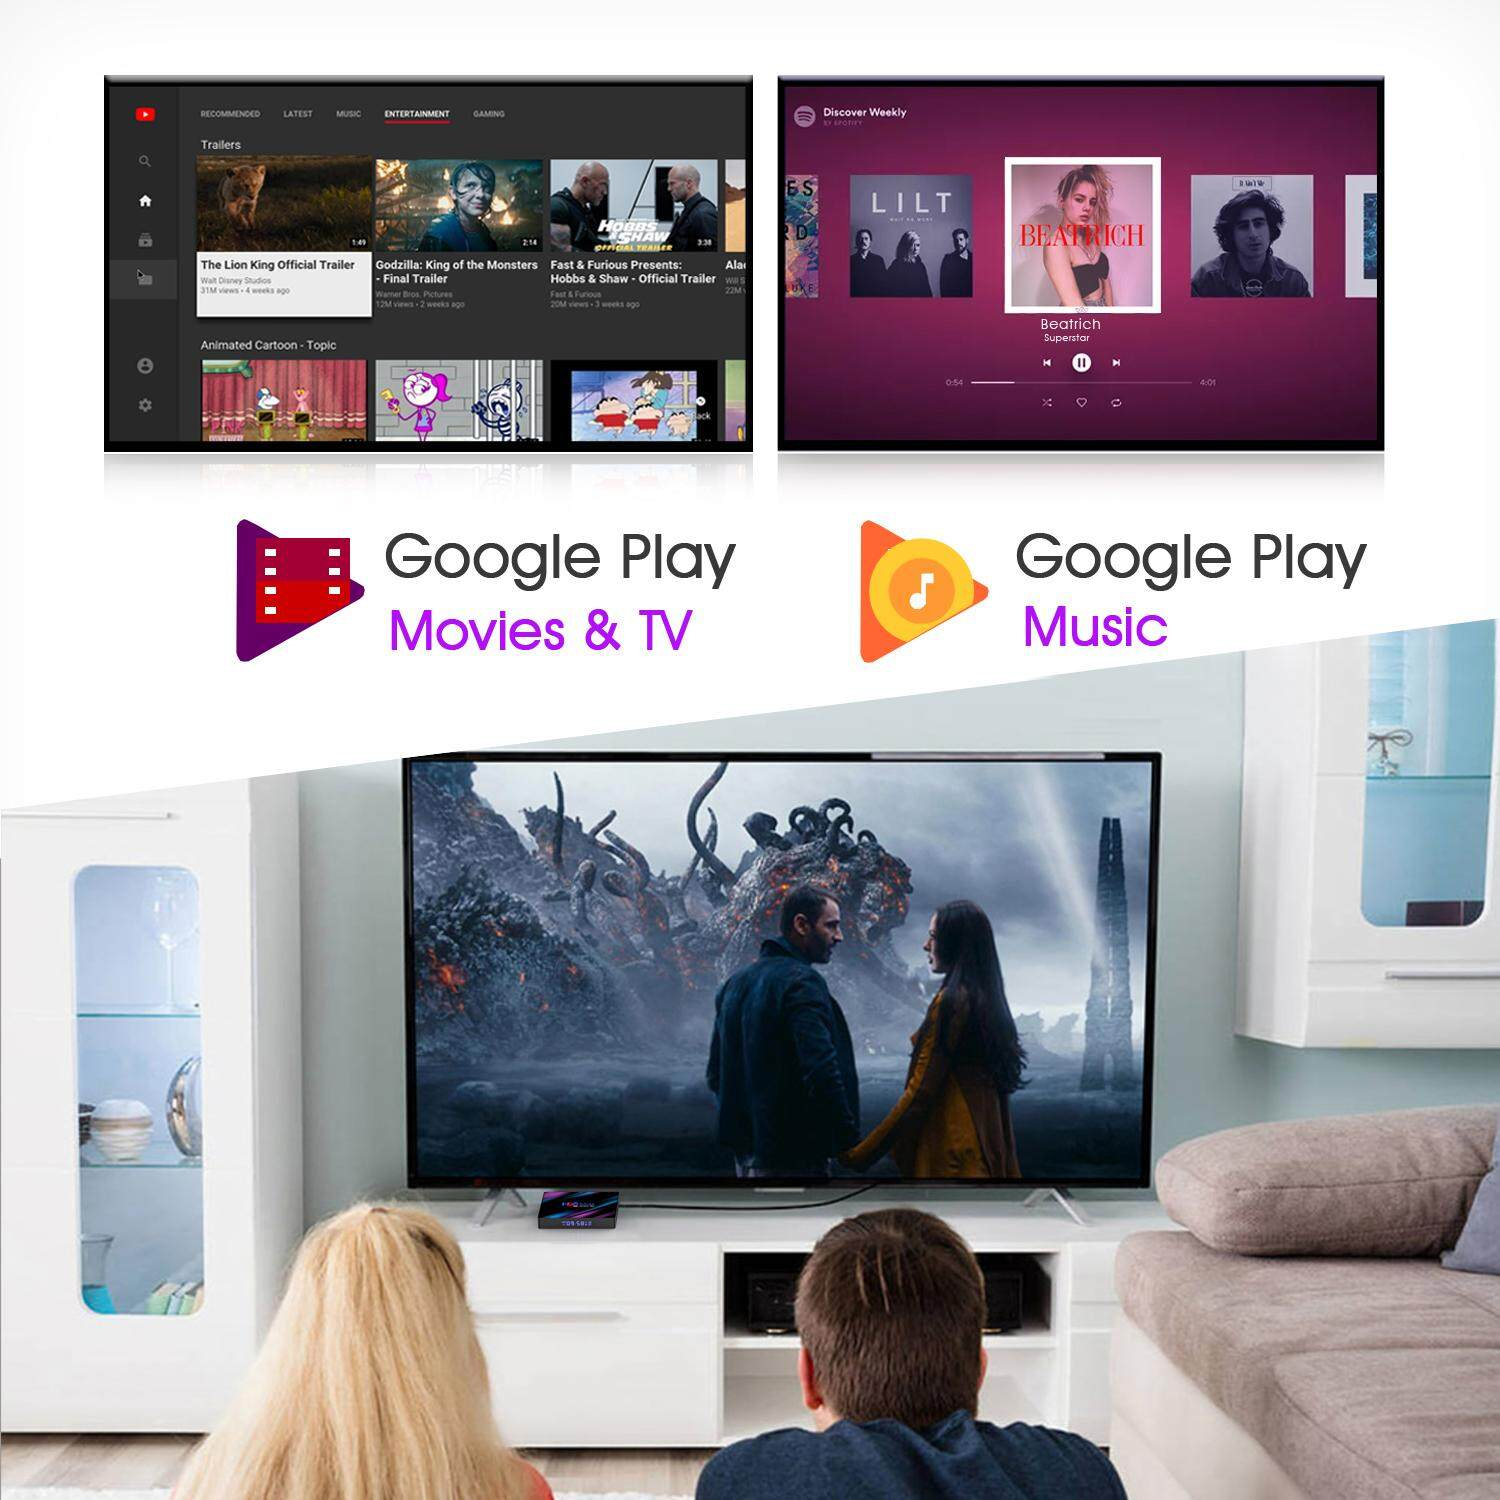 [MidYearPre-order] New H96 MAX TV Box (Preintall 10k Channels/Movies) 4GB  64GB Android 9 0 RK3318 2 4G+5G WiFi Bluetooth 4K 1080P PULIERDE Smart